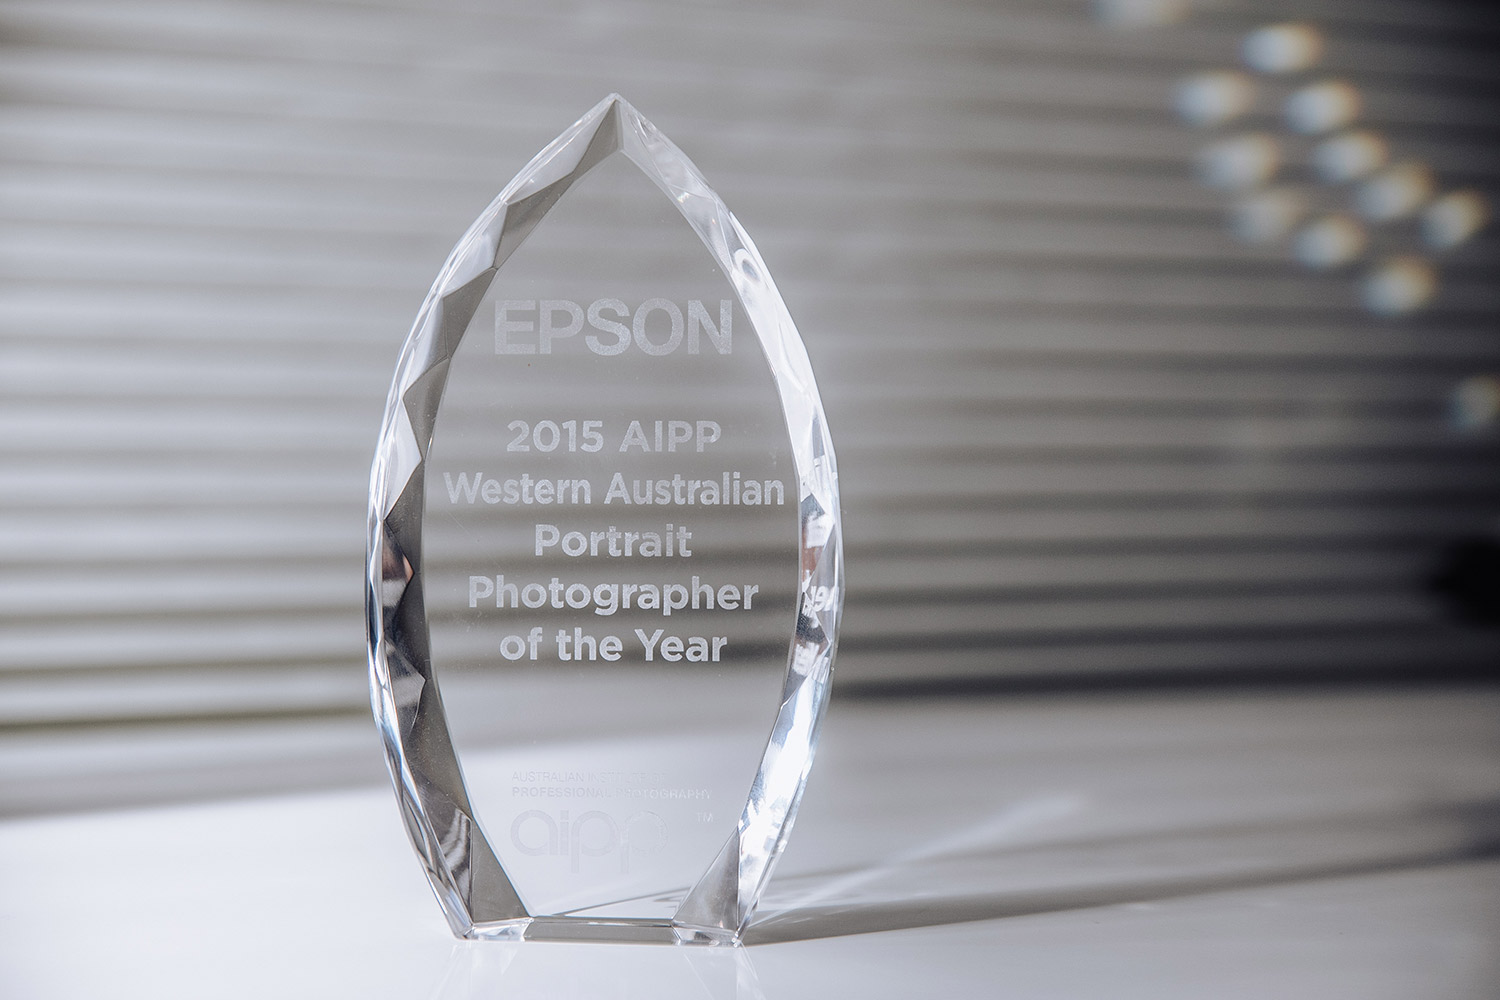 2015 AIPP Western Australian Professional Portrait Photographer of the Year